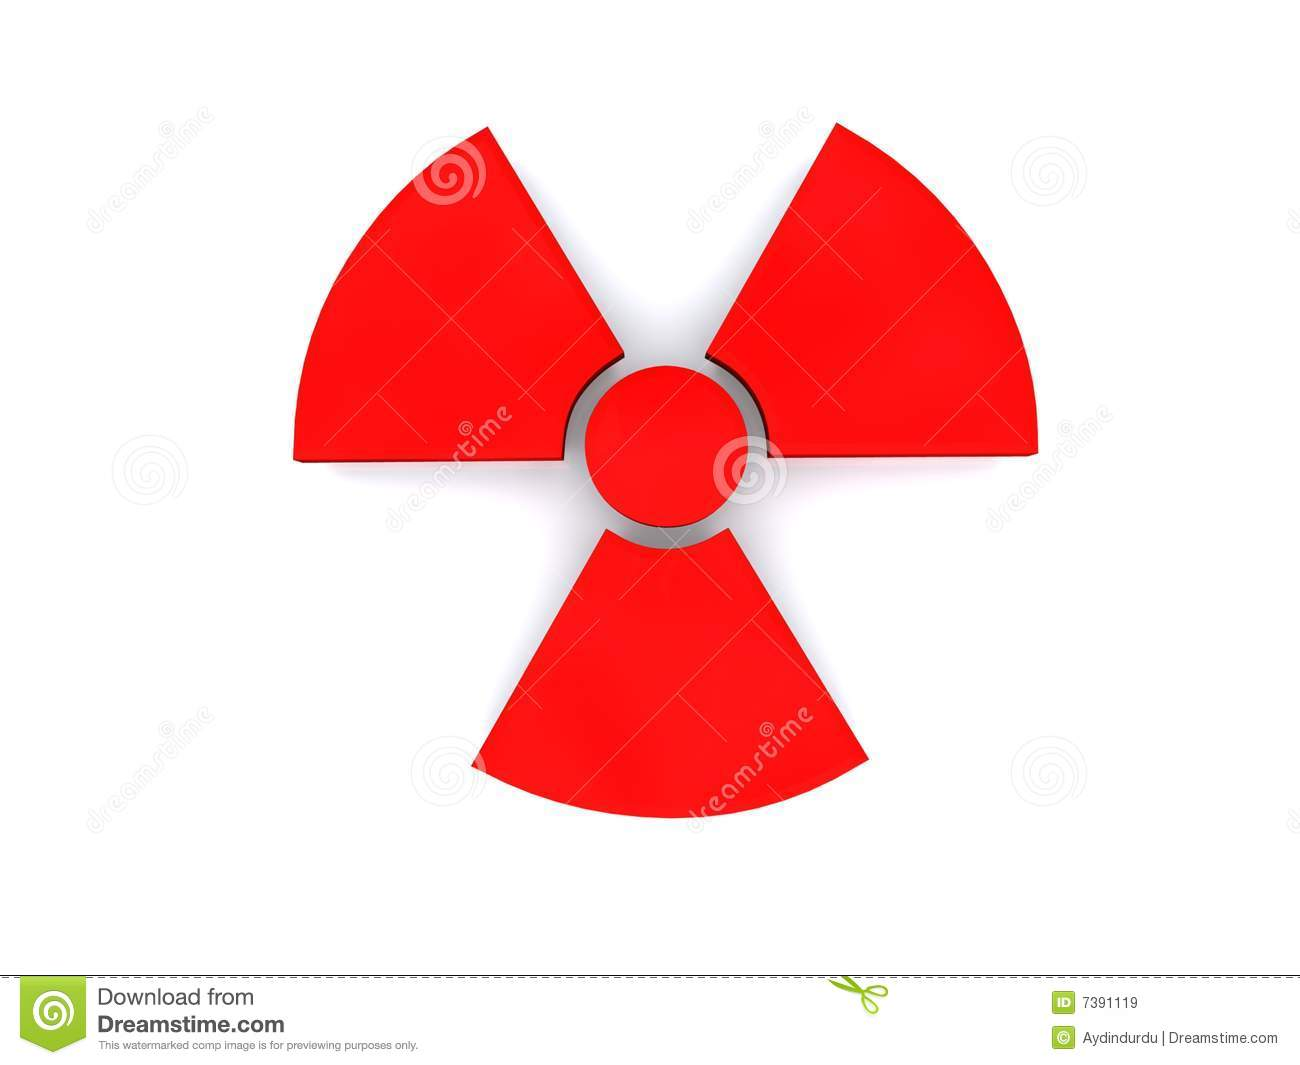 Nuclear symbol stock illustration illustration of concept 7391119 nuclear symbol biocorpaavc